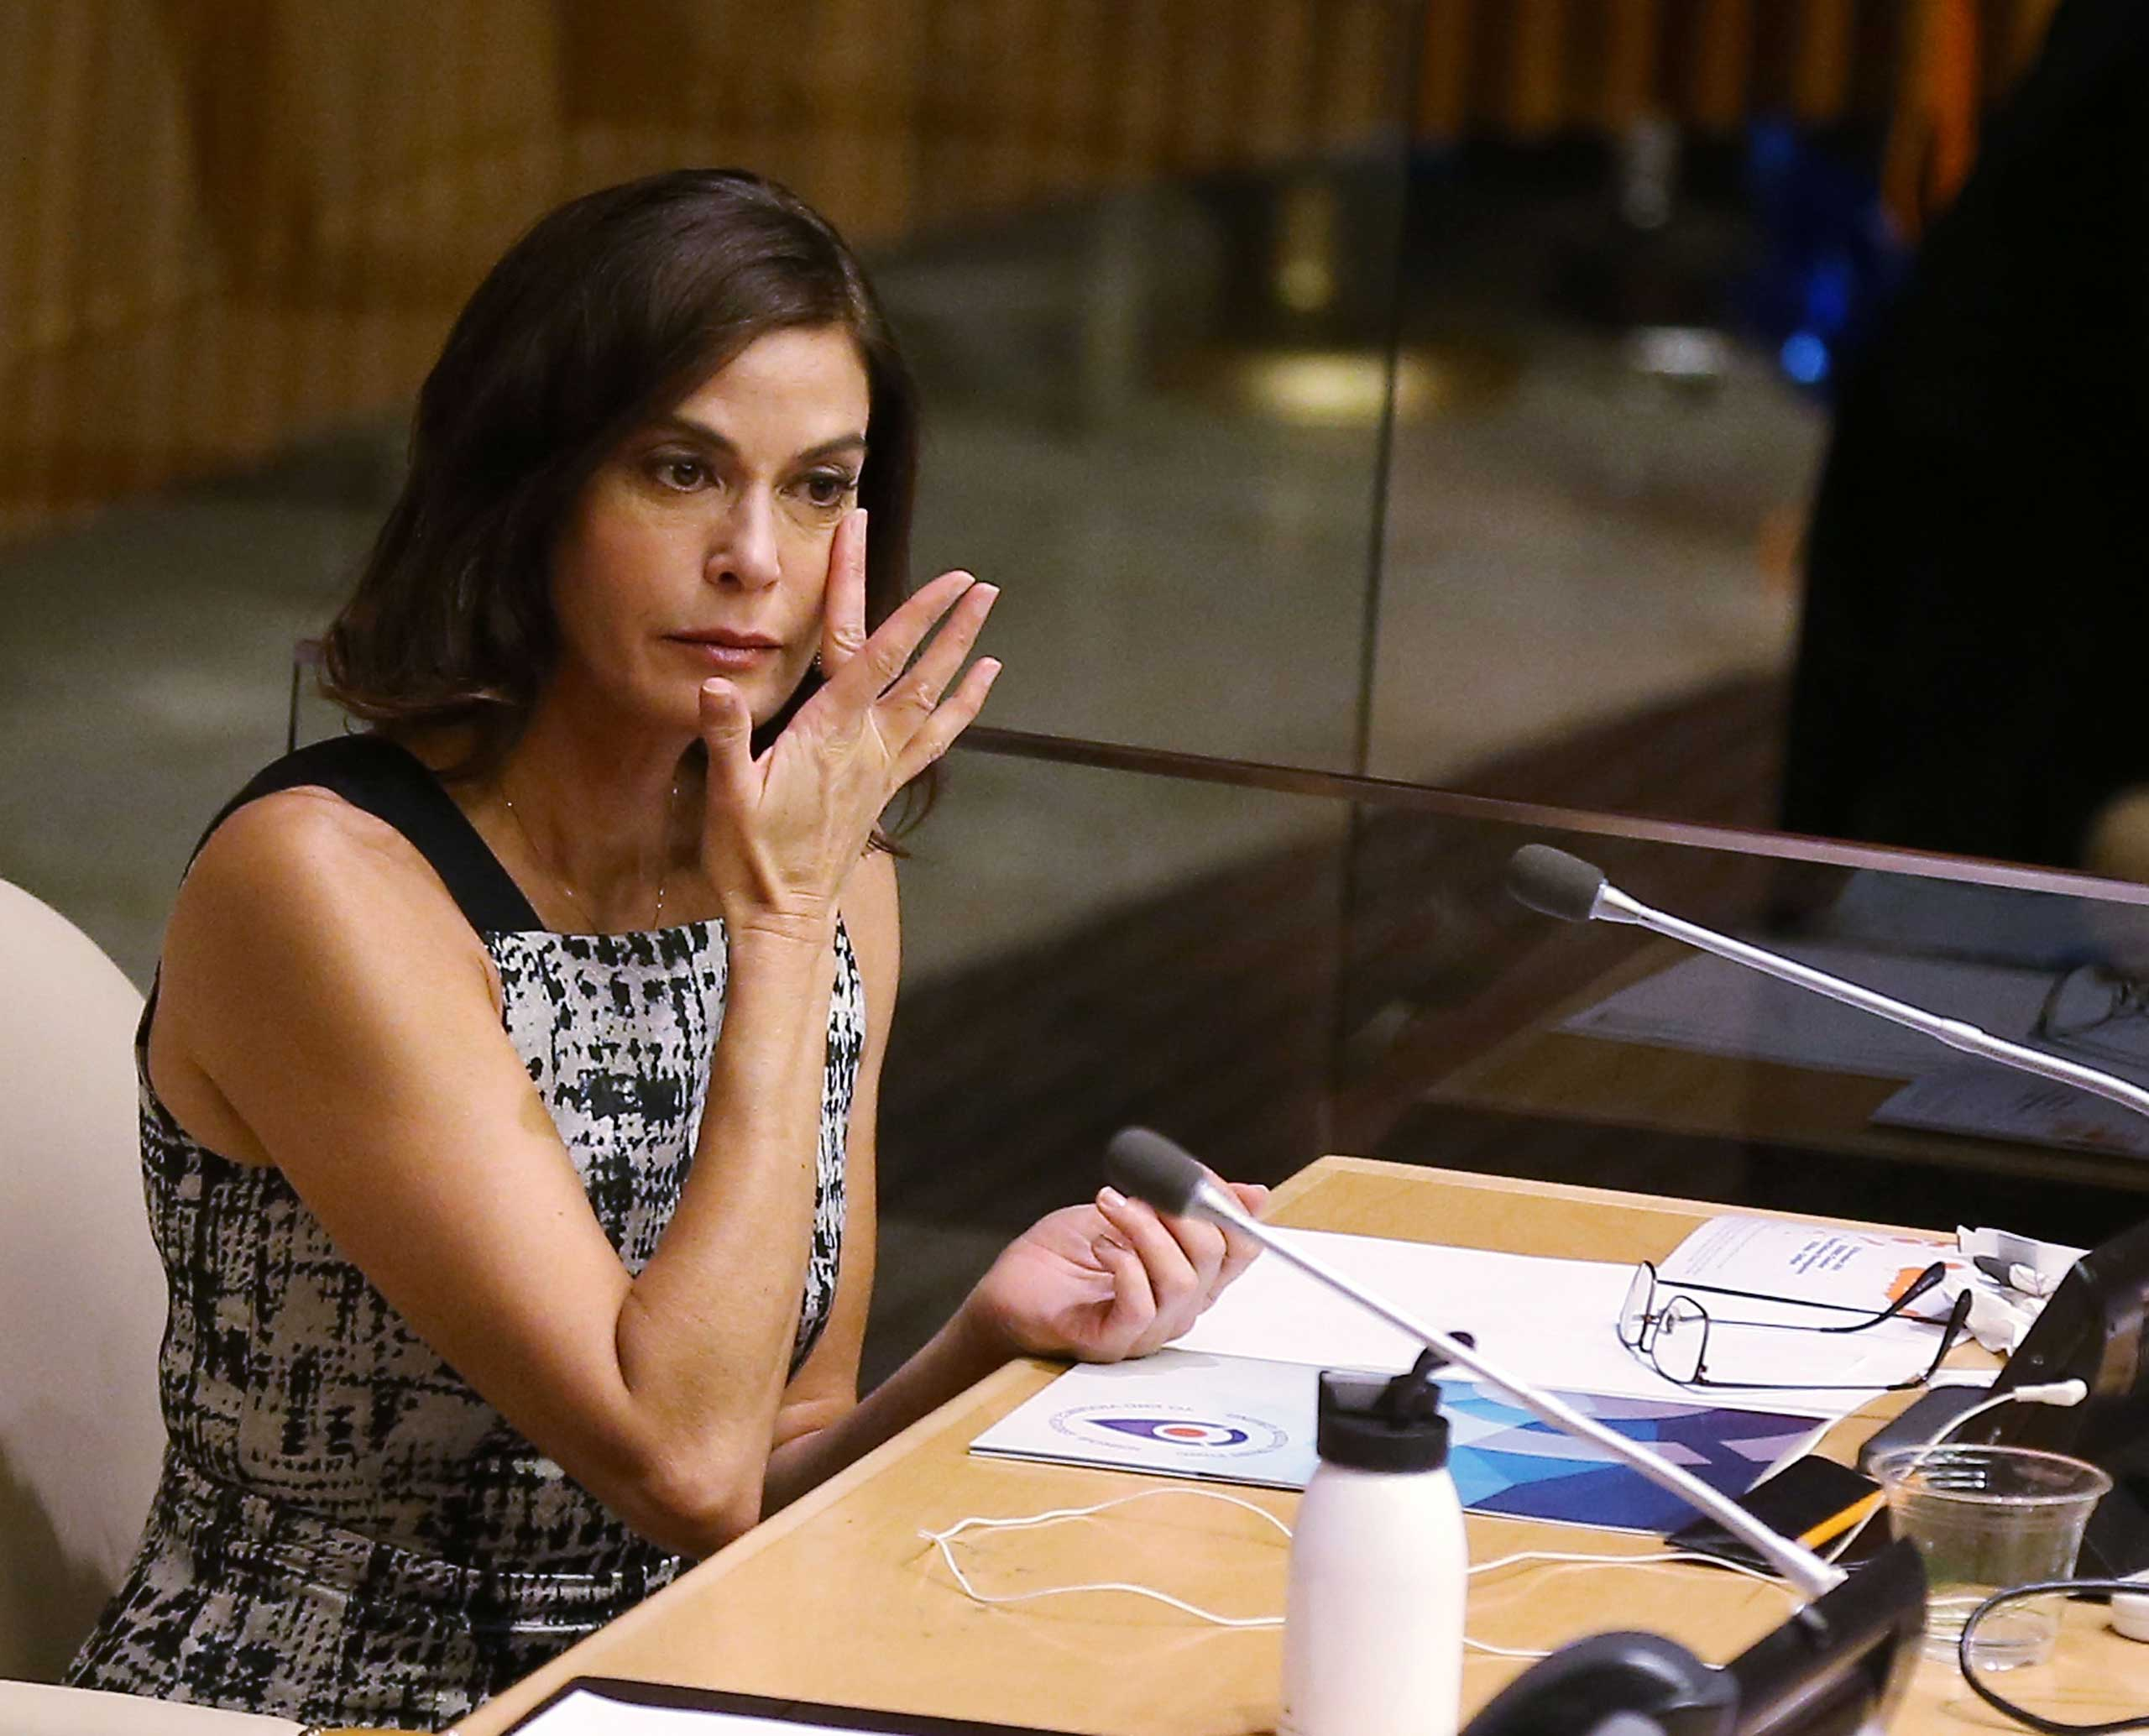 Actress Teri Hatcher wipes away tears after her speech during the United Nations Official Commemoration of the International Day For The Elimination Of Violence Against Women on Nov. 25, 2014 in New York.